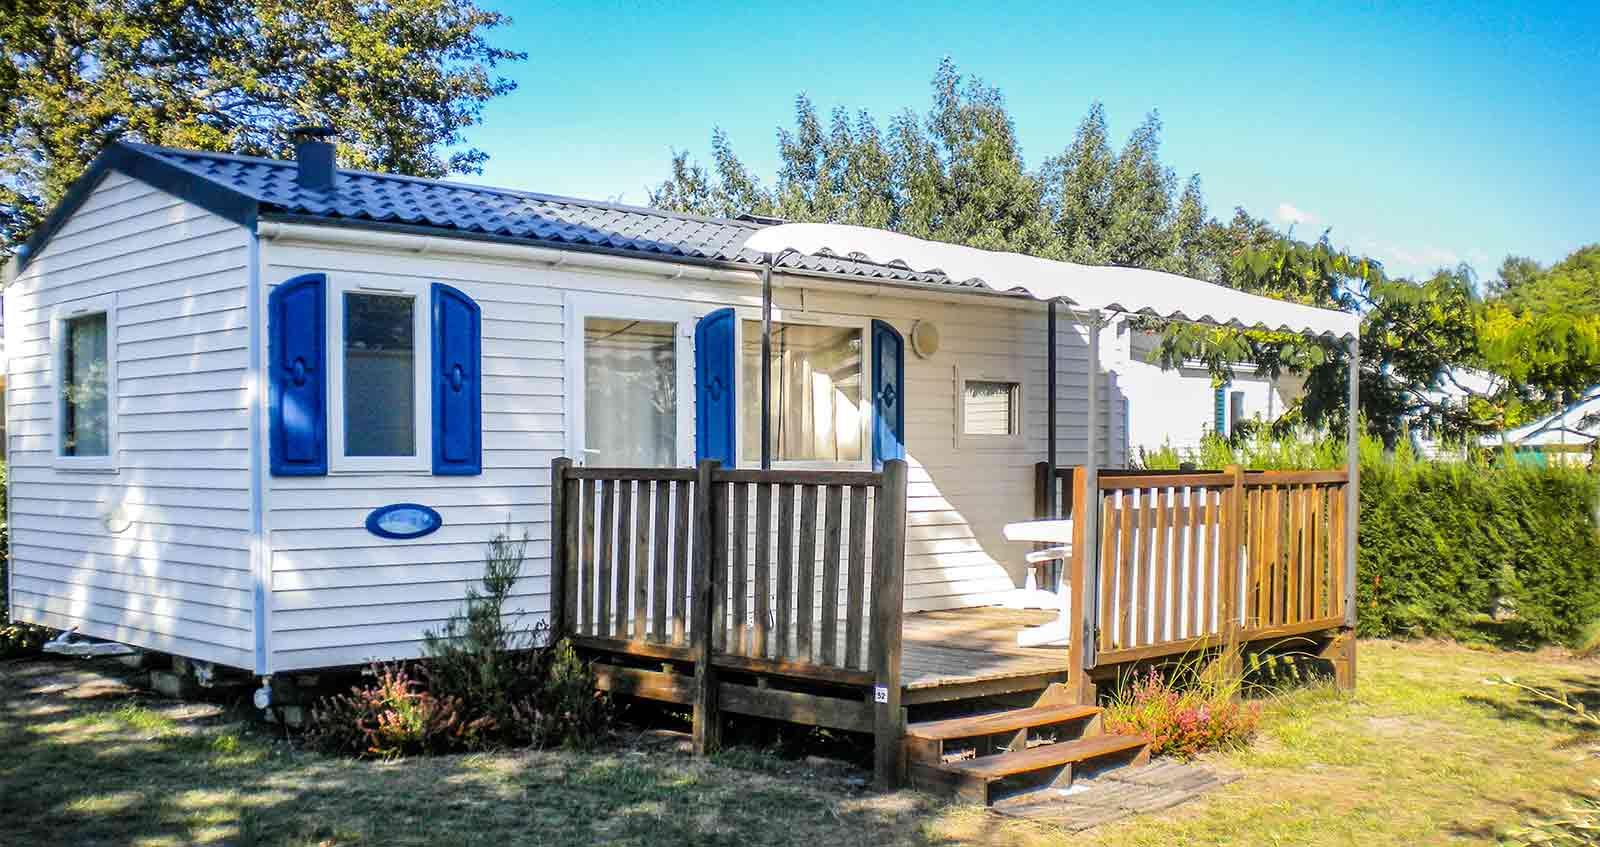 Gironde mobile home rental - Rent a mobile home in Hourtin, Gironde (33)